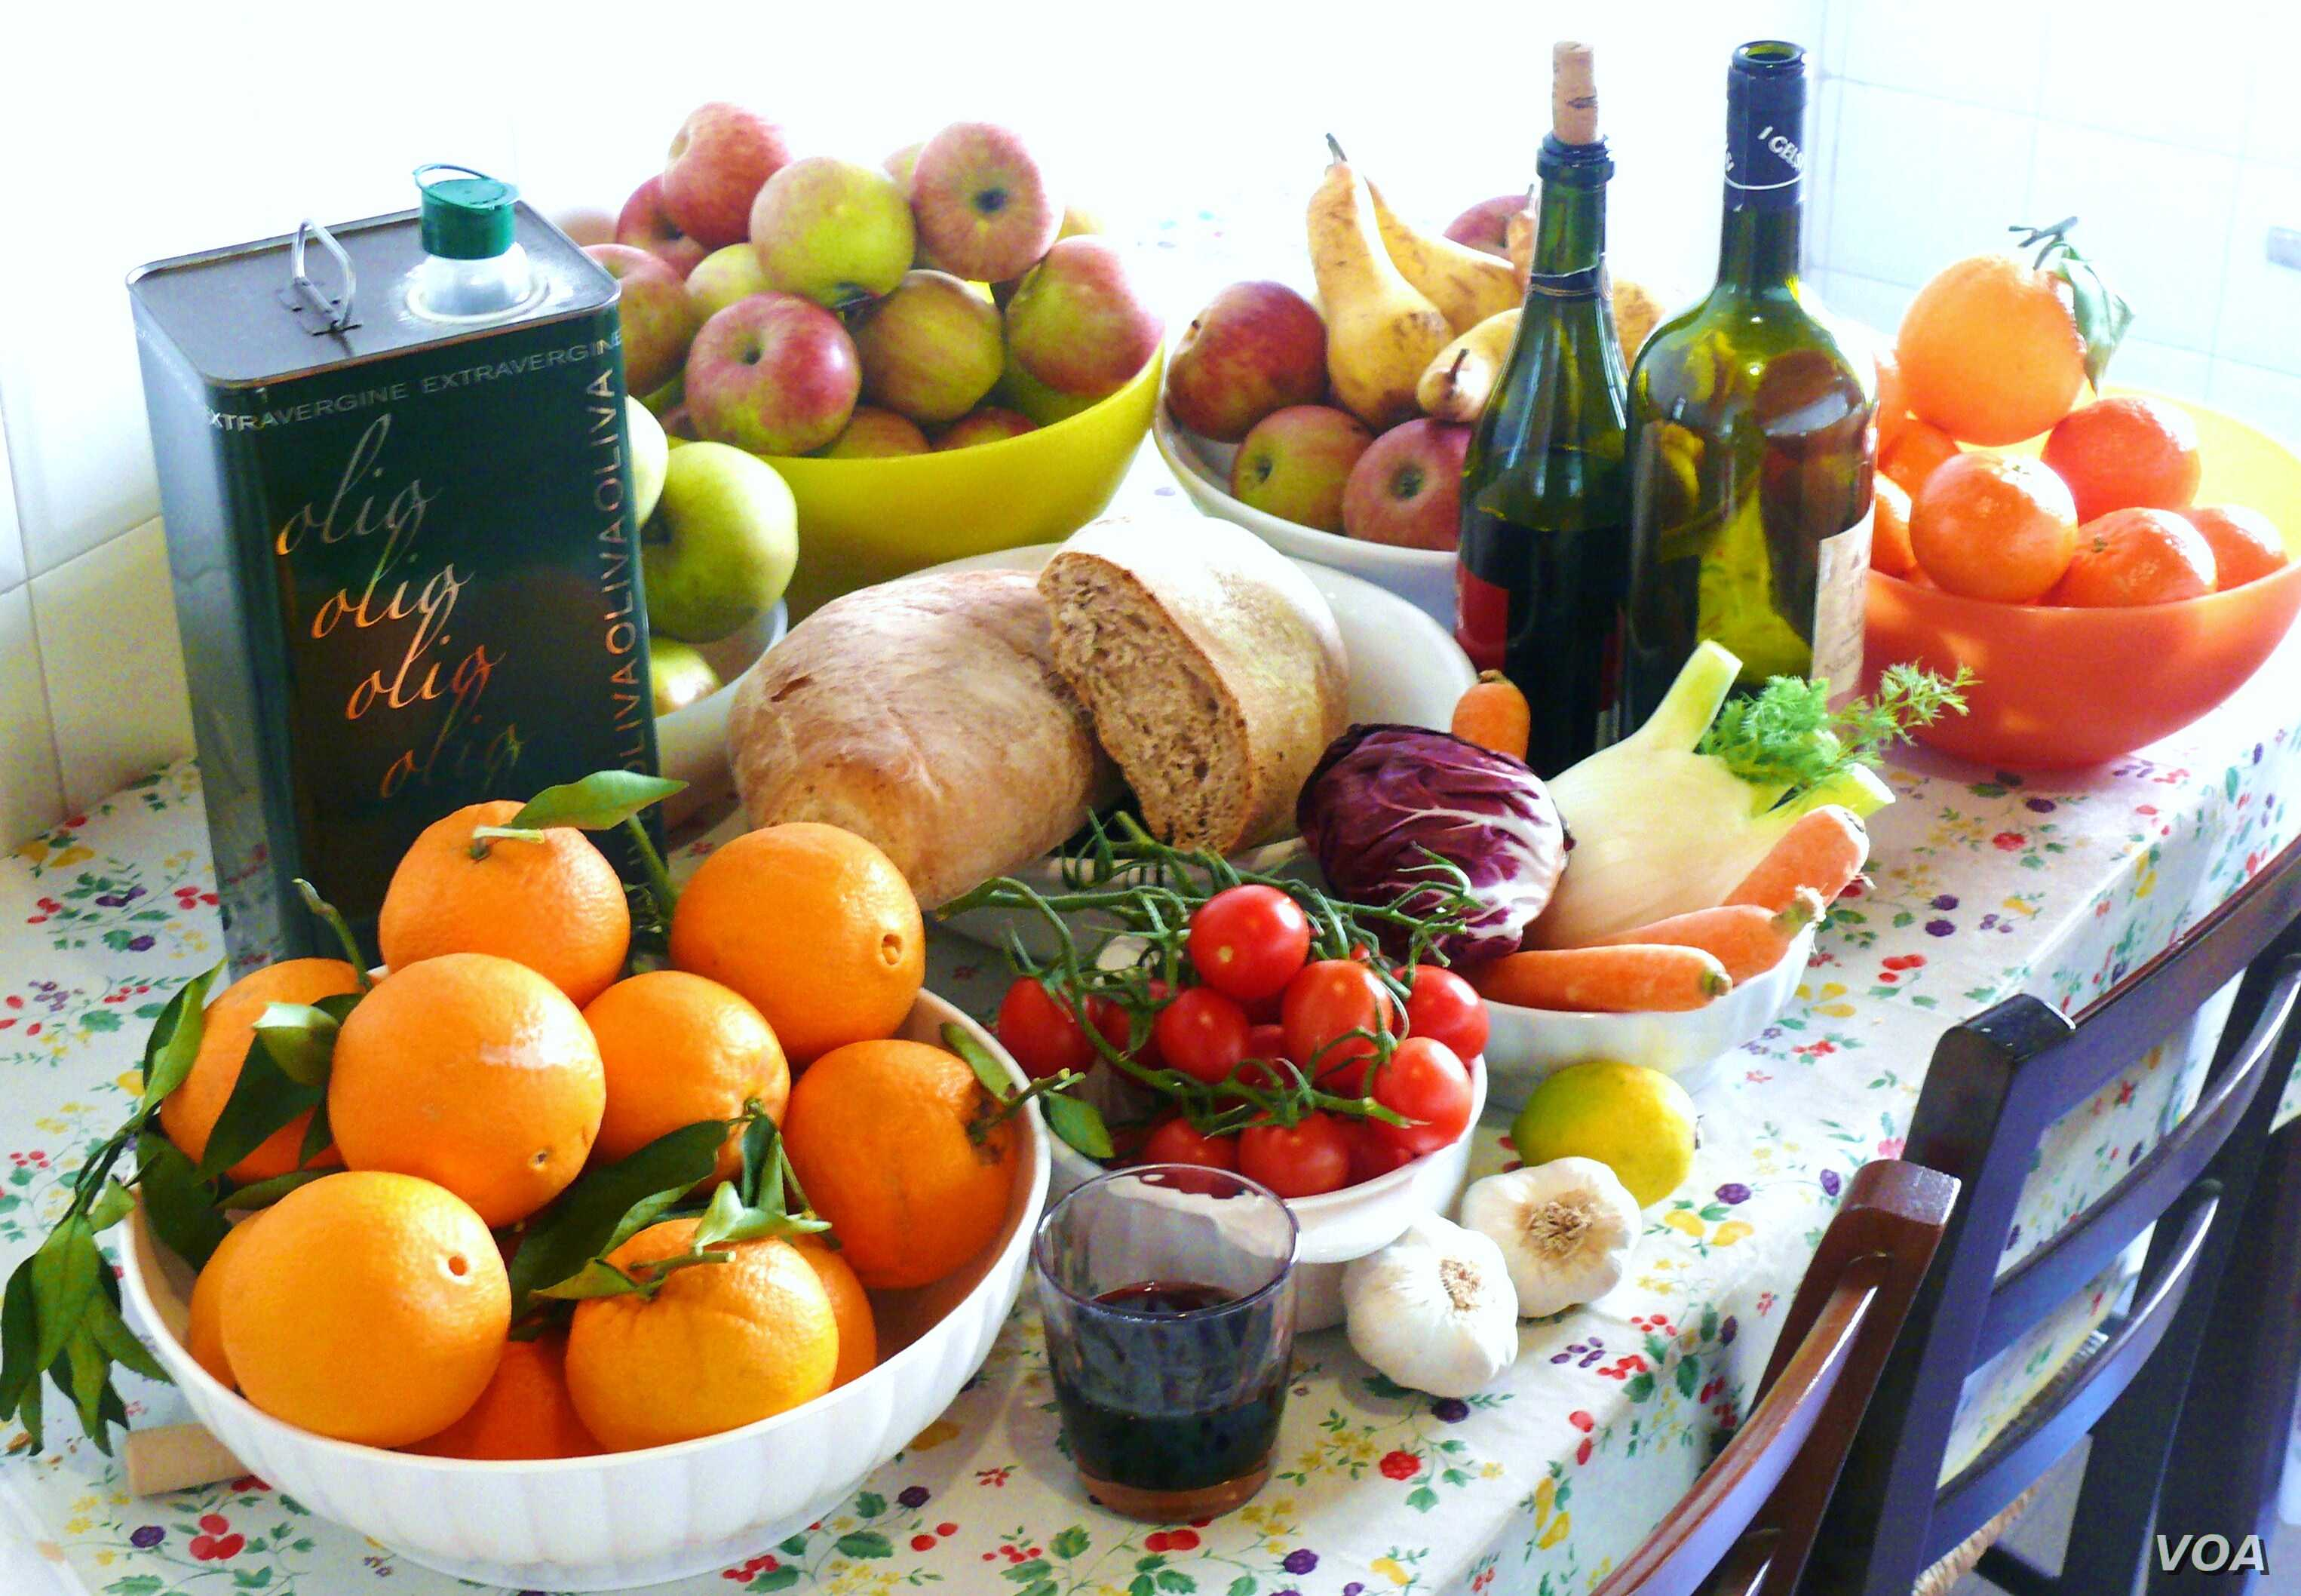 A new study suggests that fat as a part of a Mediterranean diet can be healthy.